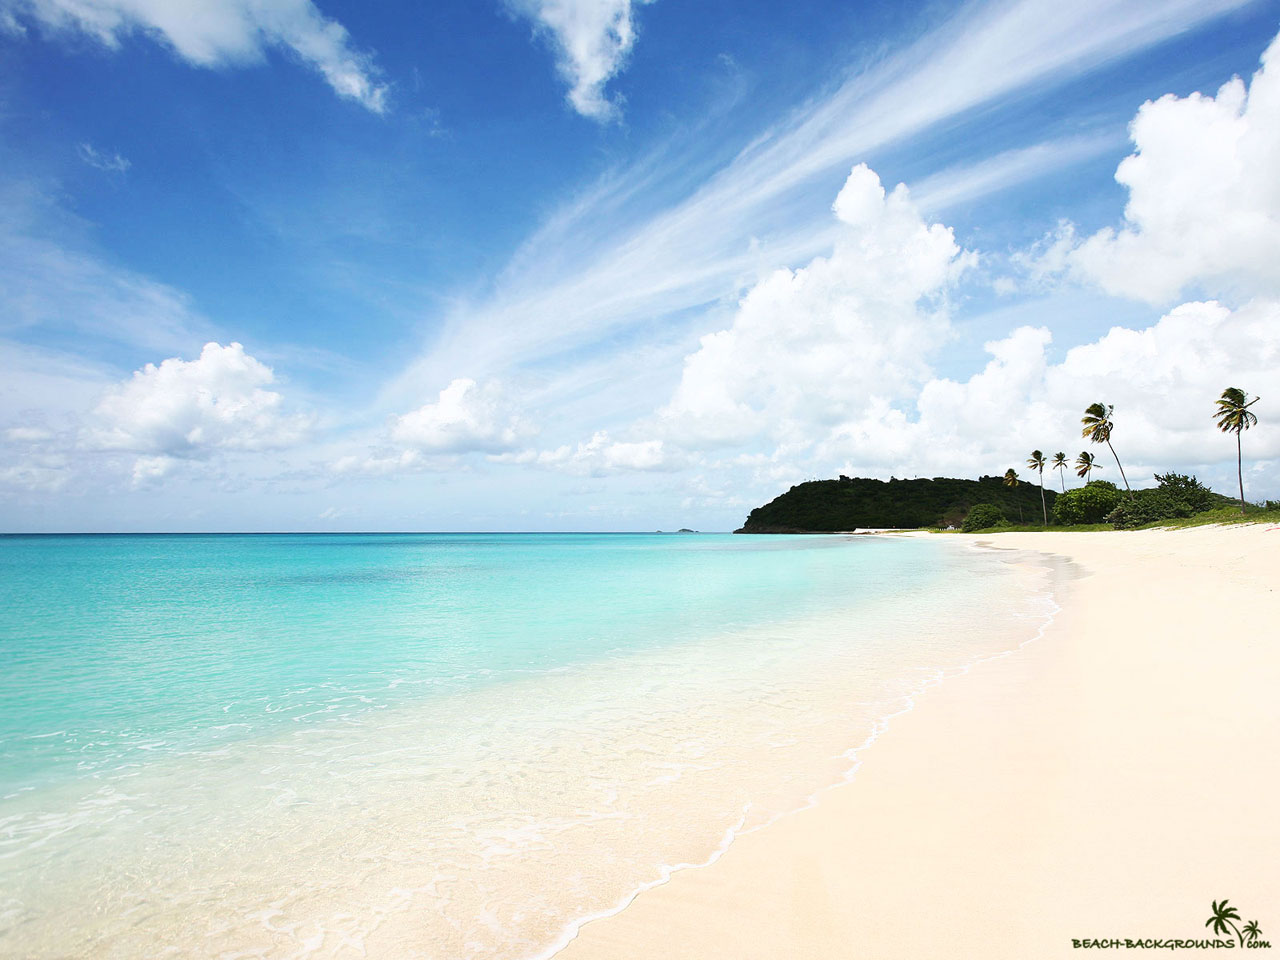 Hd Tropical Island Beach Paradise Wallpapers And Backgrounds: Start Today Now: Start Today Introduction